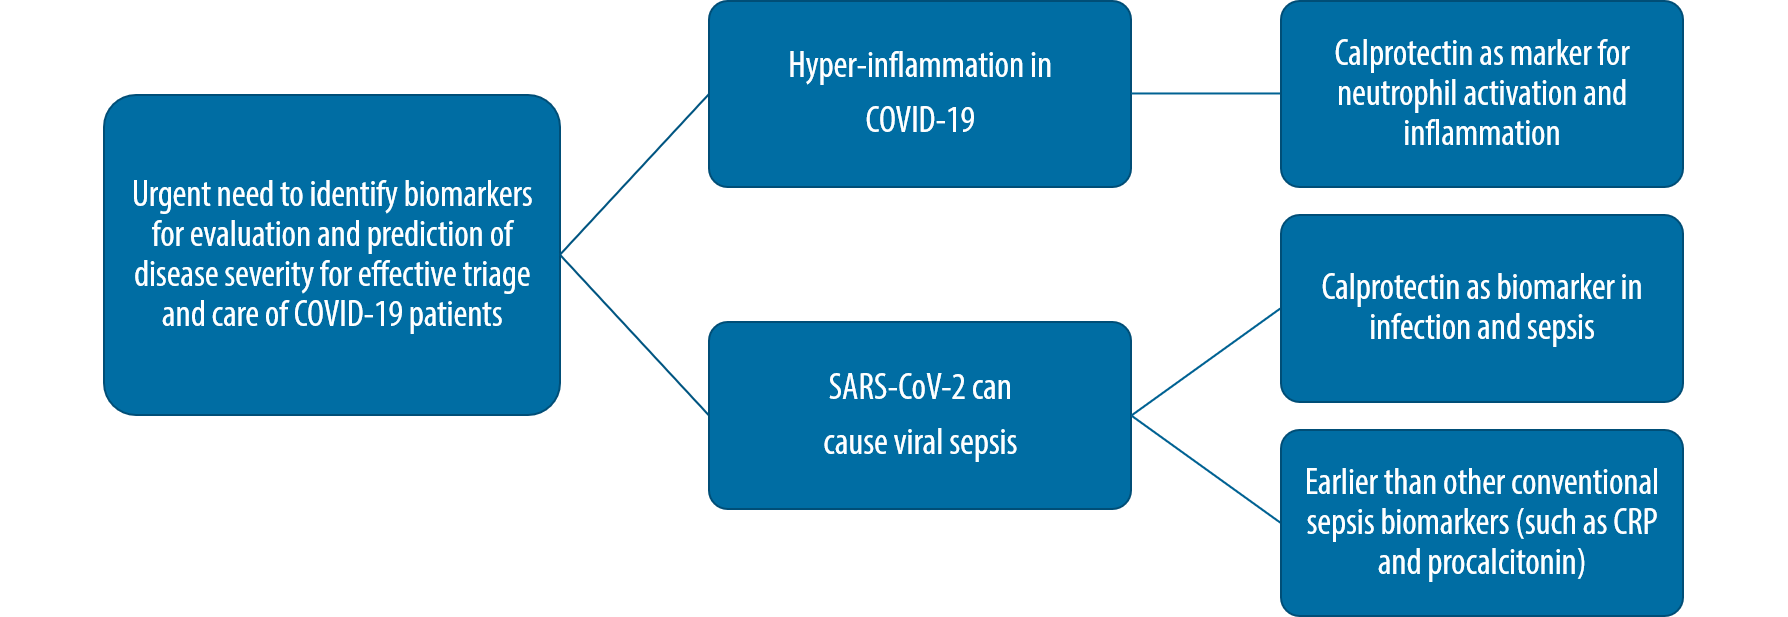 Calprotectin in SARS-CoV-2 infections